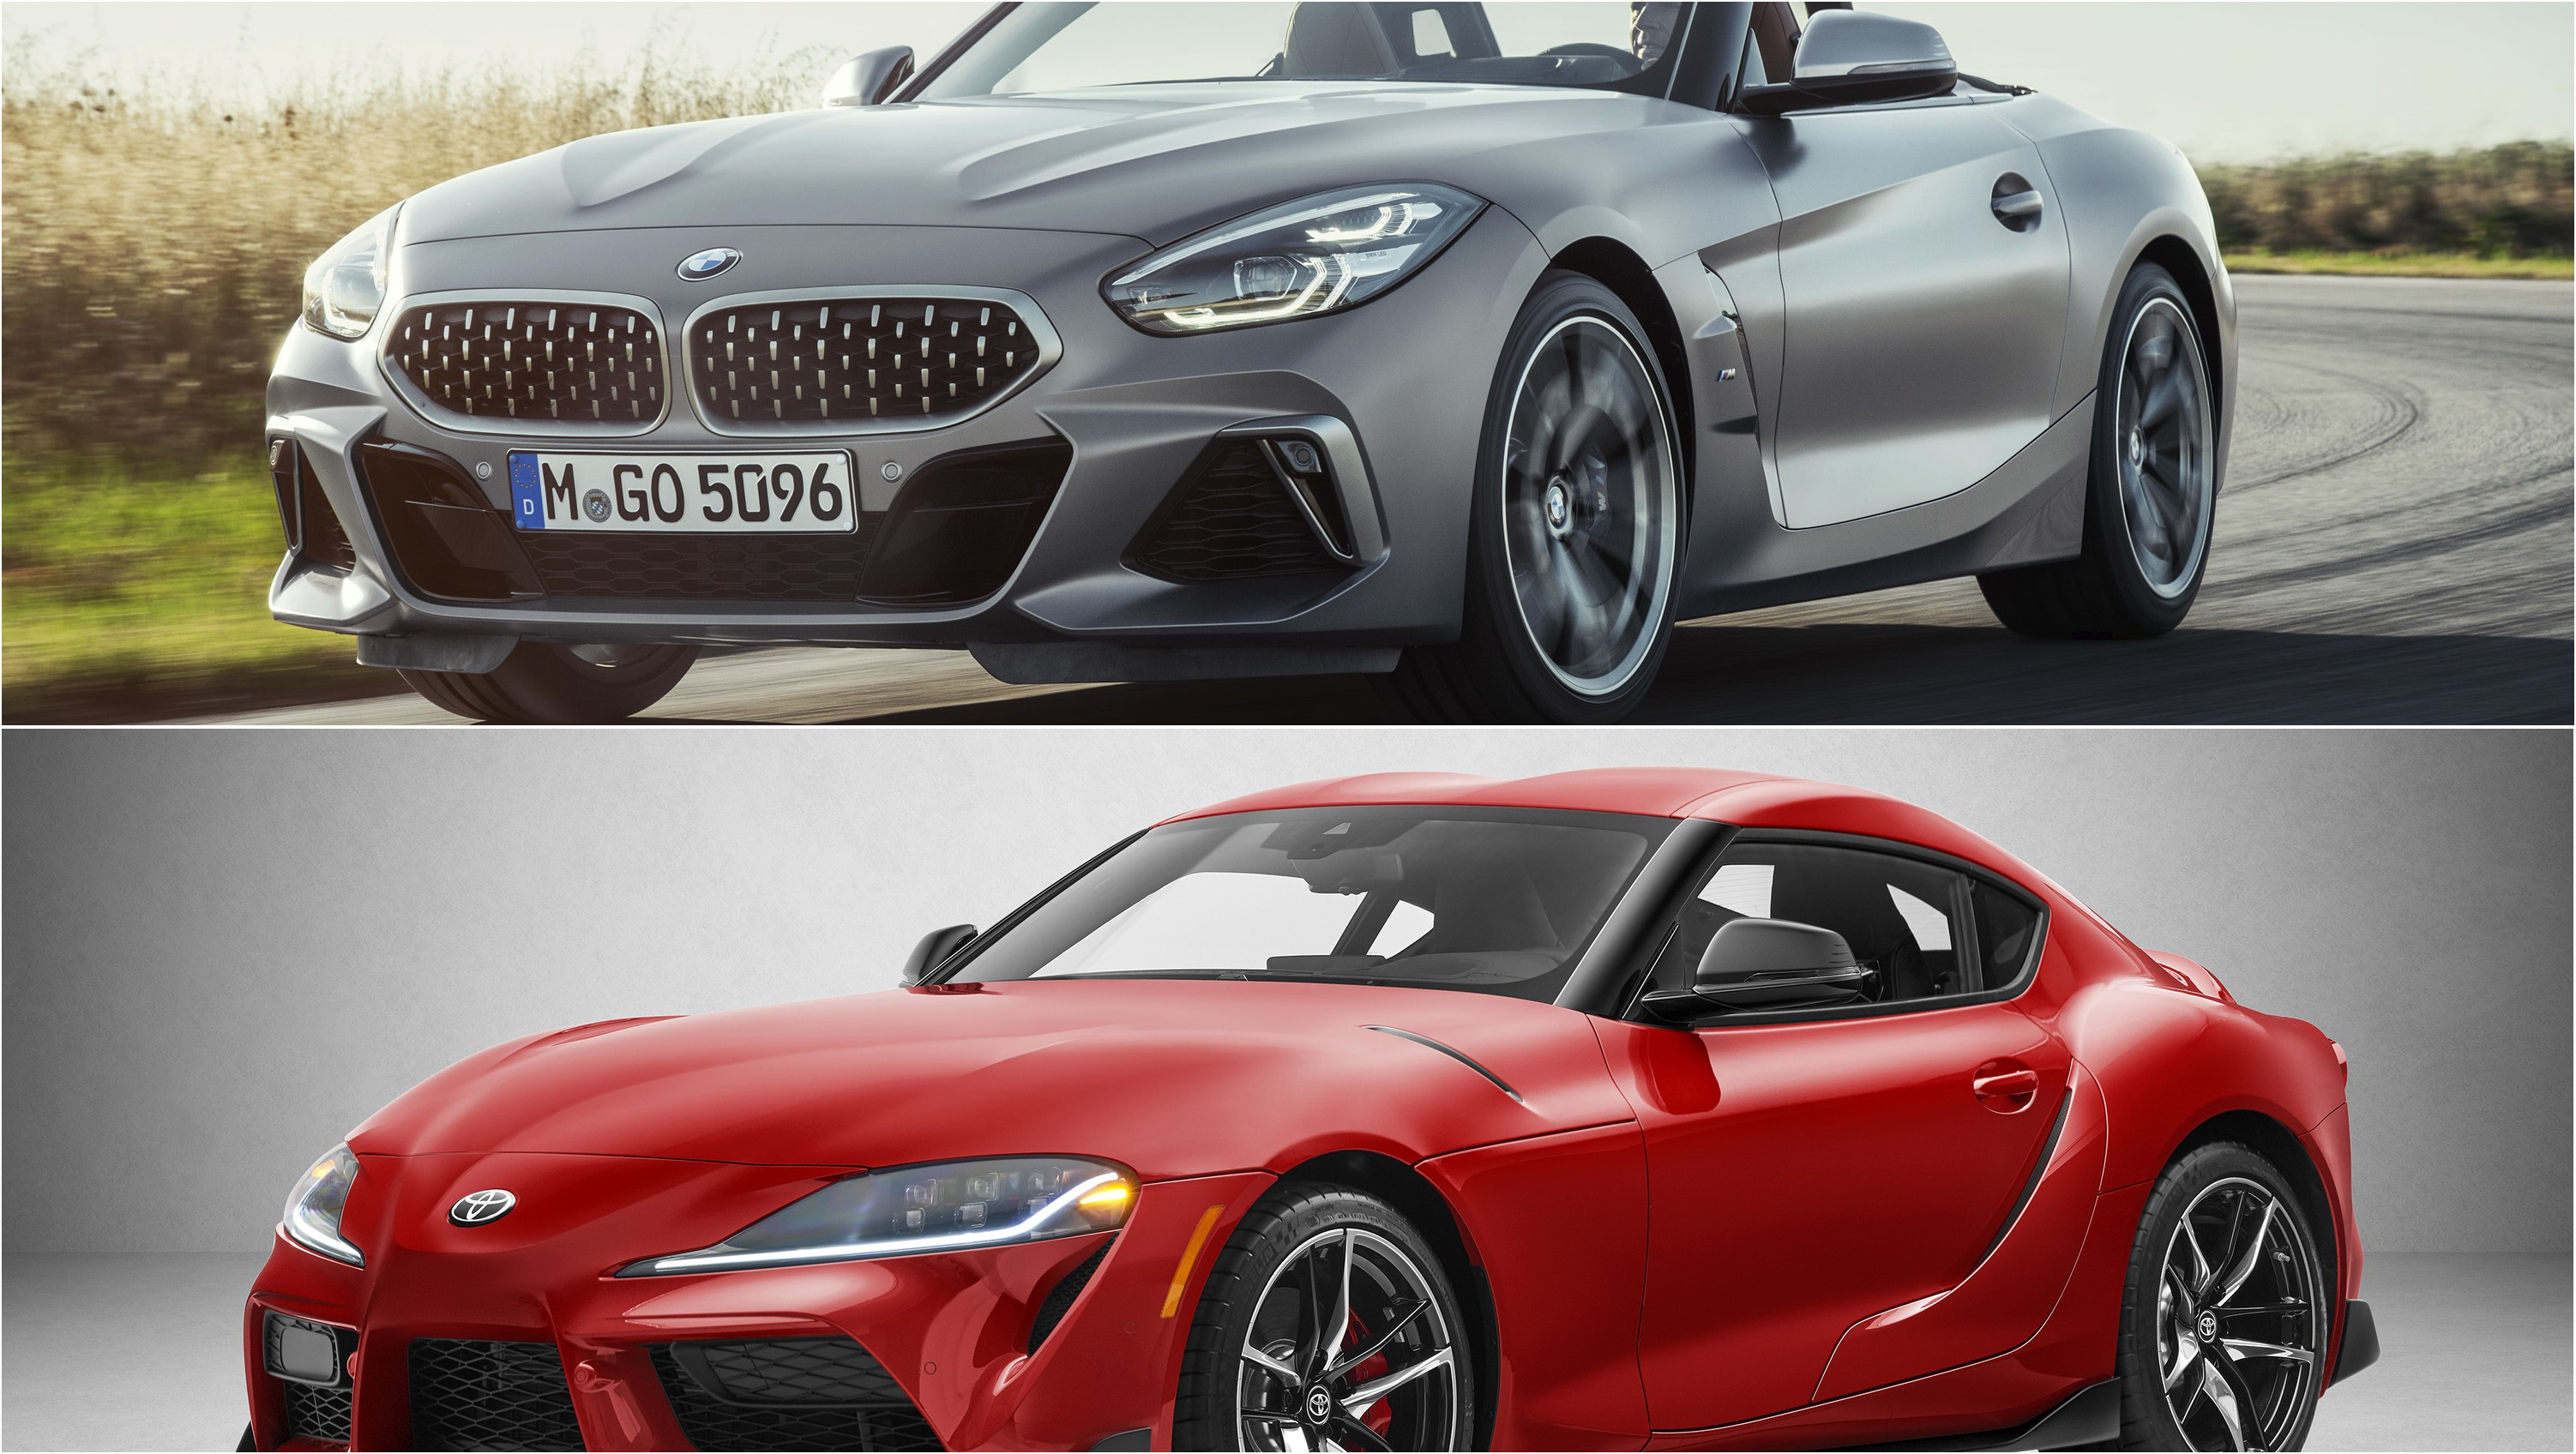 2020 toyota supra vs  2019 bmw z4 pictures  photos  wallpapers